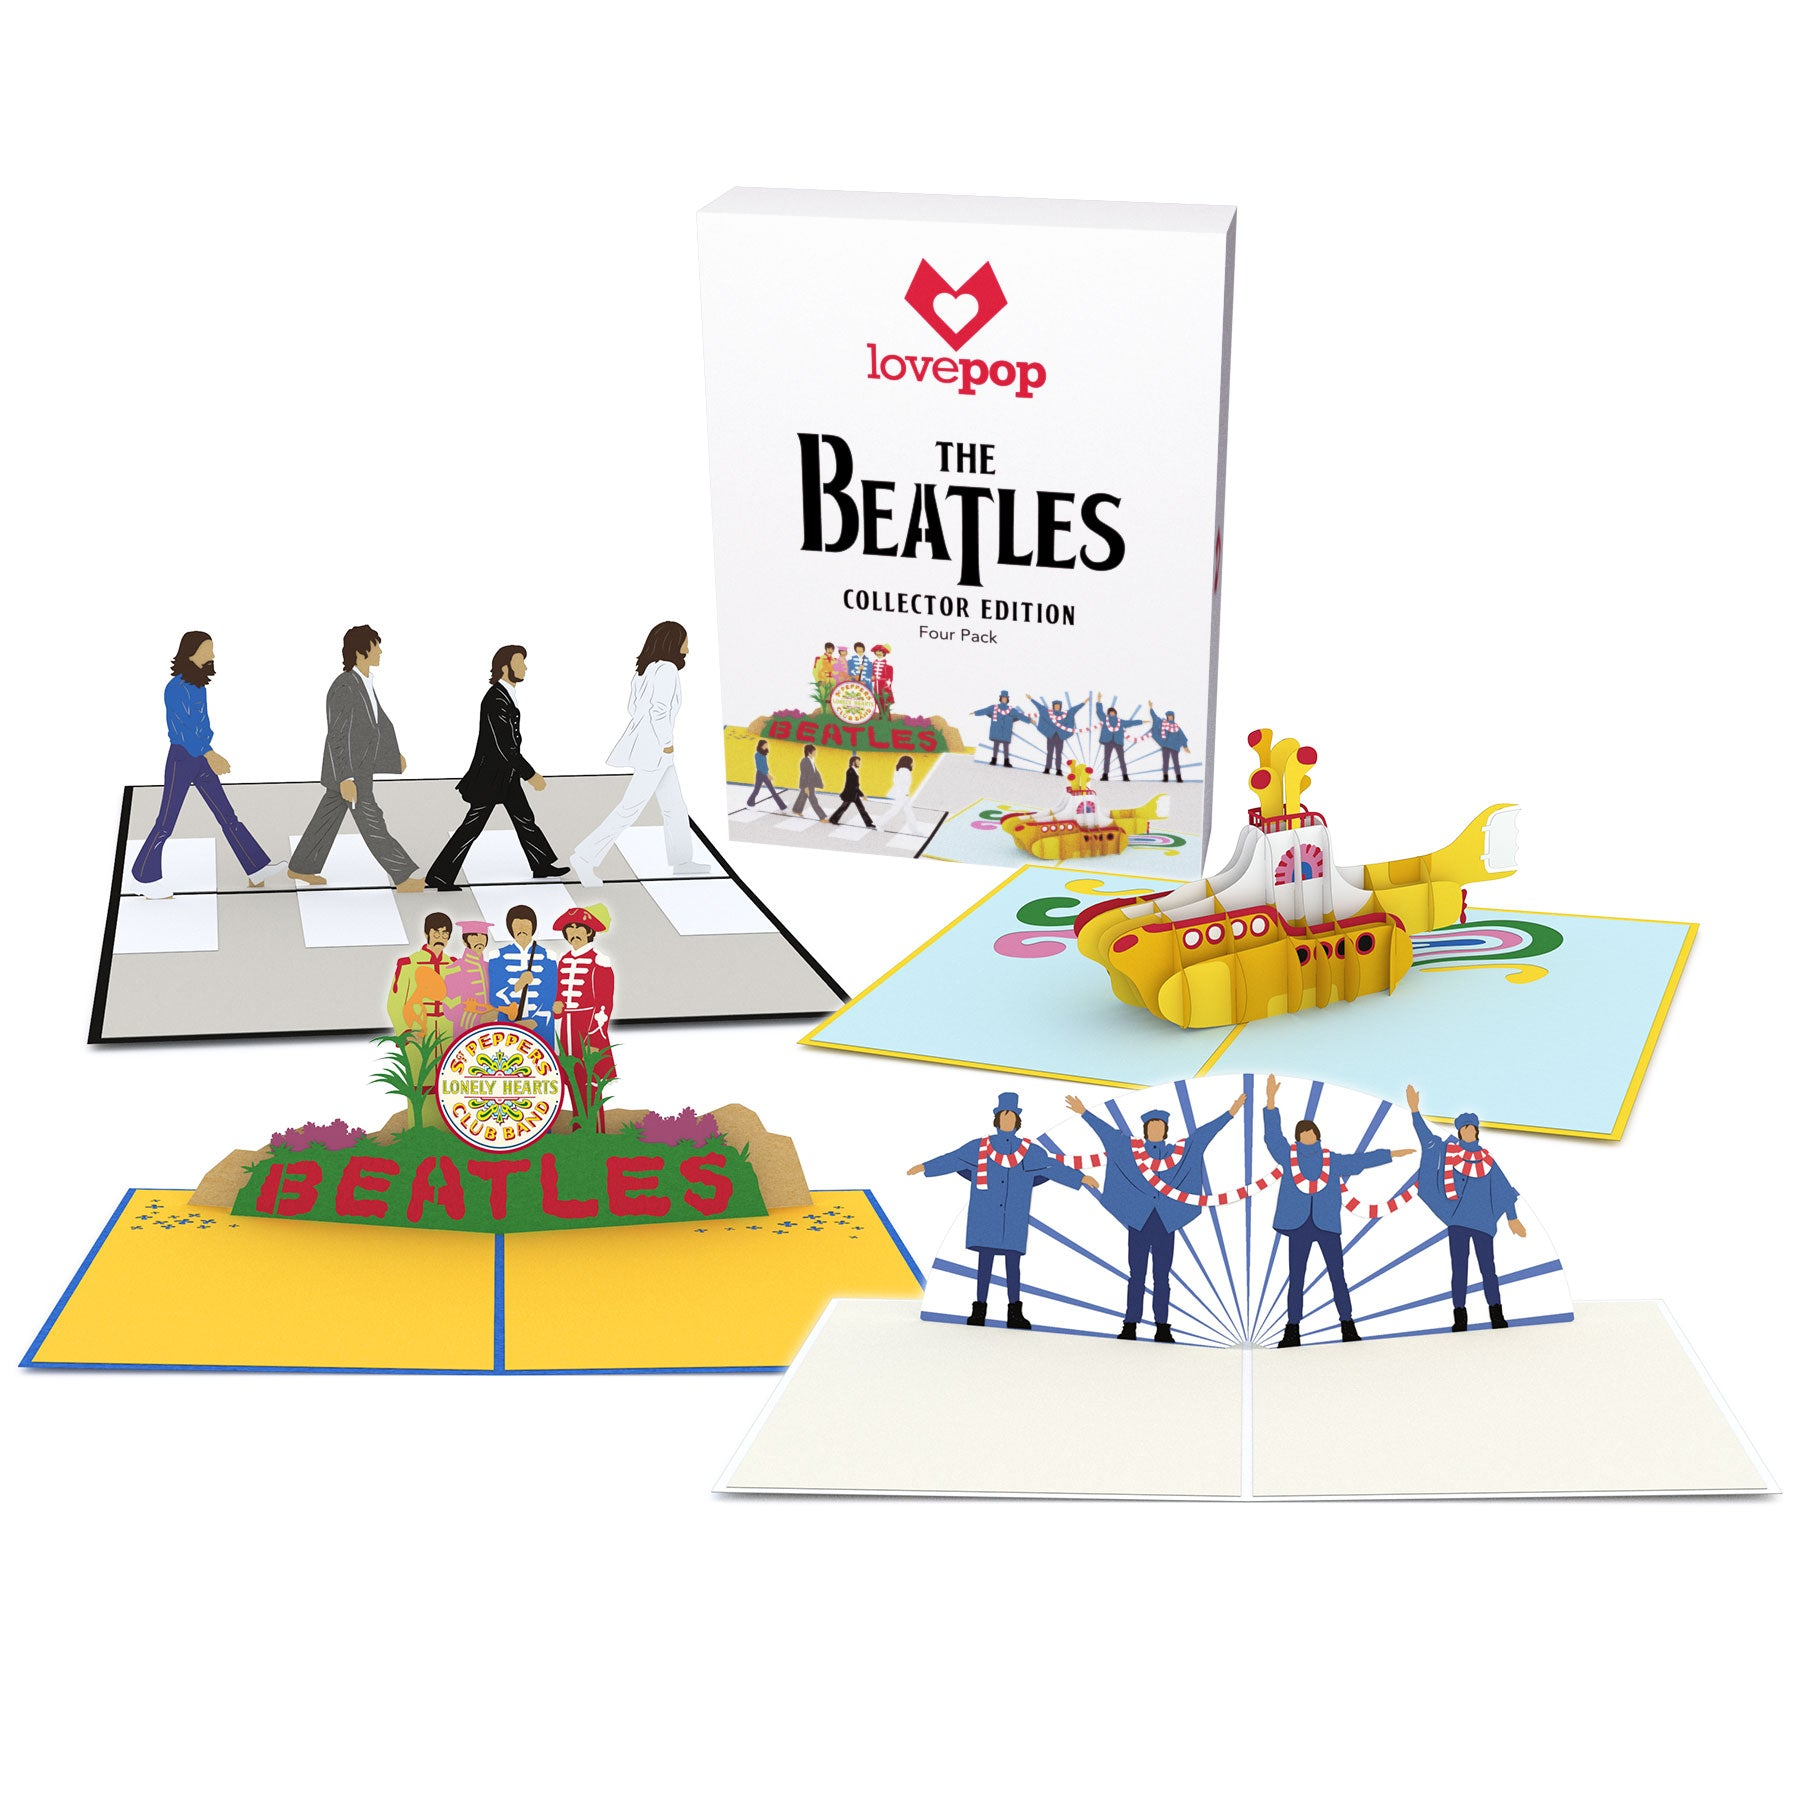 The Beatles Collector Edition Box Set